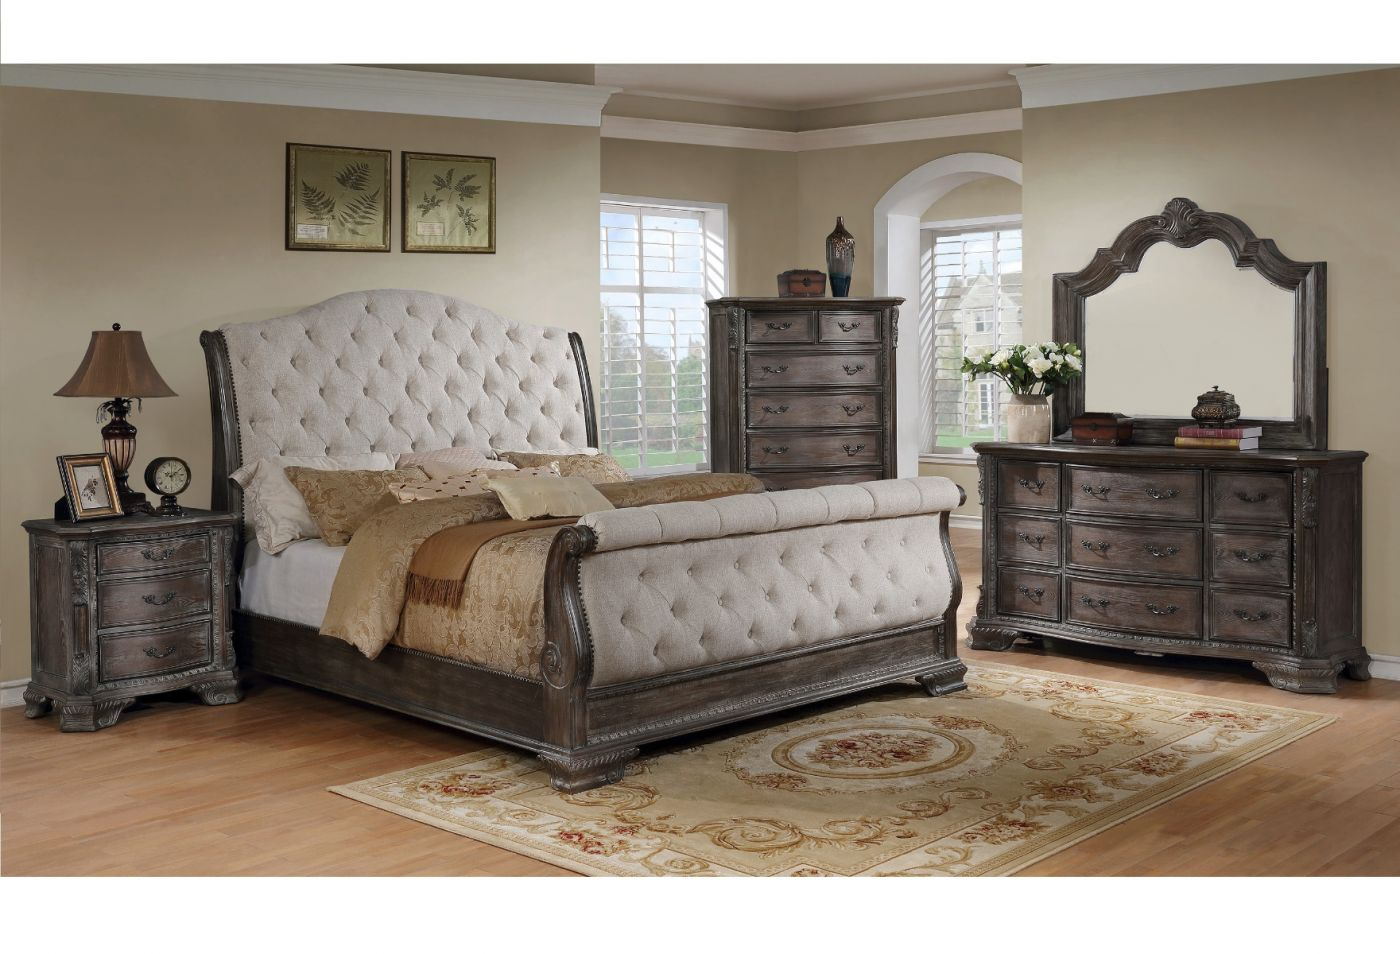 Bedroom Furniture King Sleigh Sets Rattan Poster Closet Four Brown ...